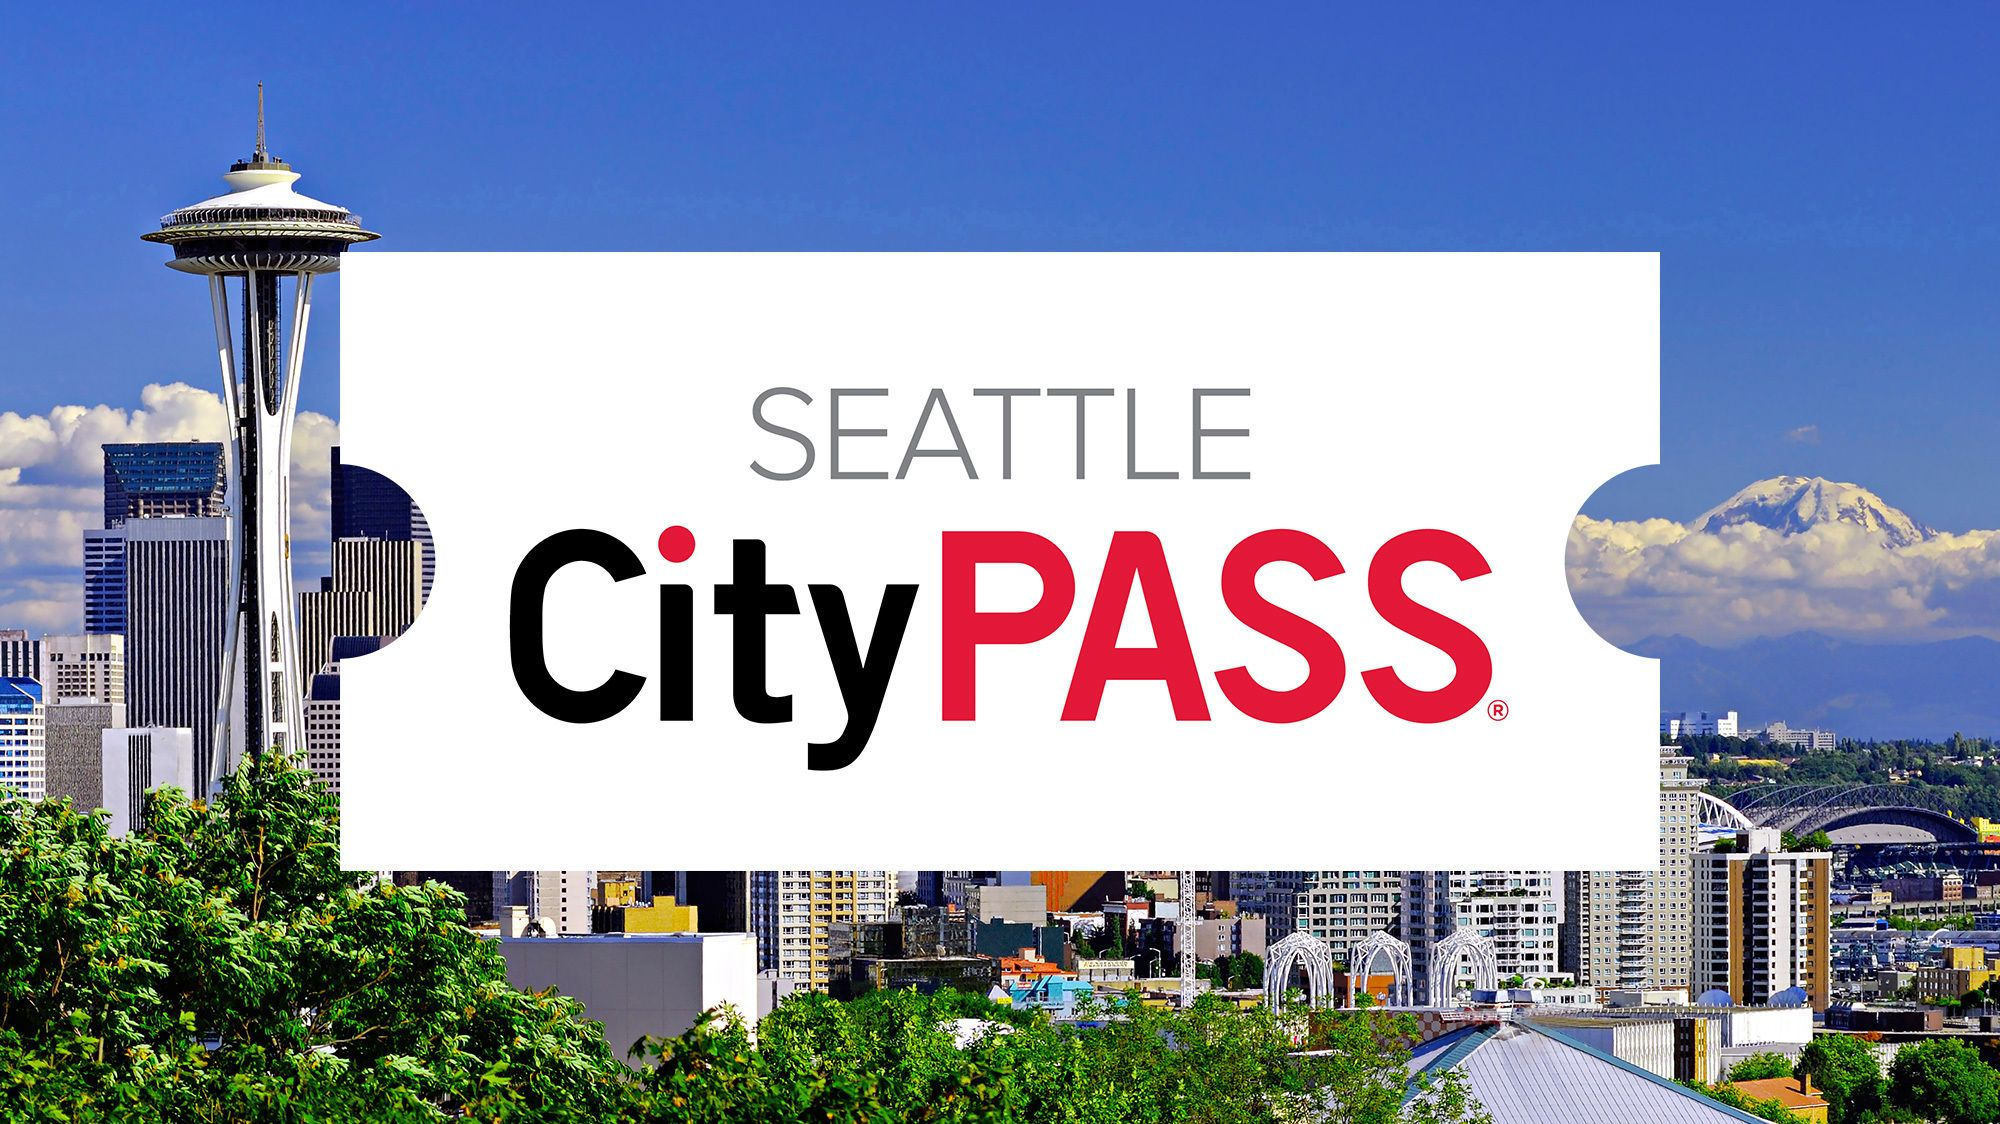 Seattle CityPASS: Save on Entry to 5 Best Attractions